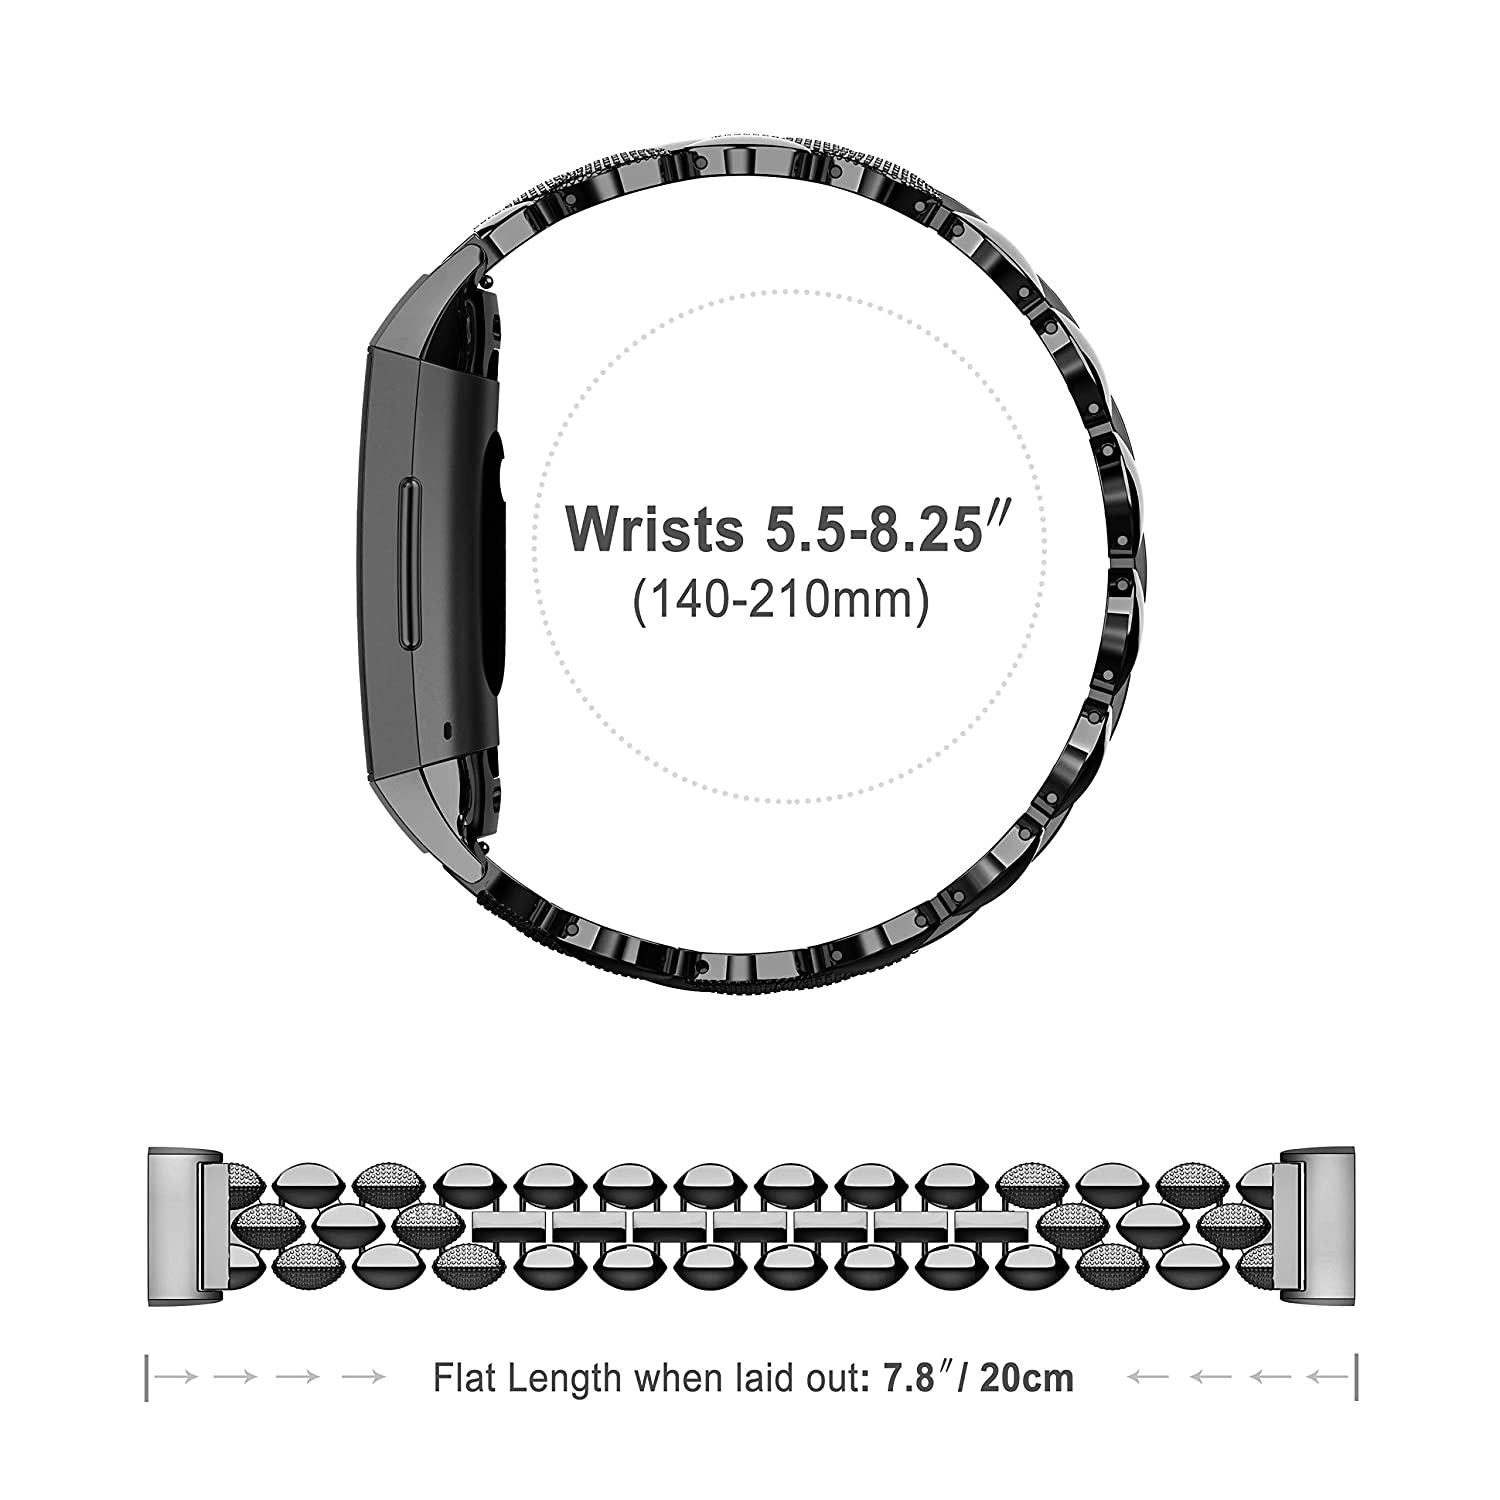 Wearlizer Compatible with Fitbit Charge 3 Bands for Women Metal Replacement Fit Bit Charge 3 hr Band Accessories Strap Bracelet Bangle Silver Rose Gold Black